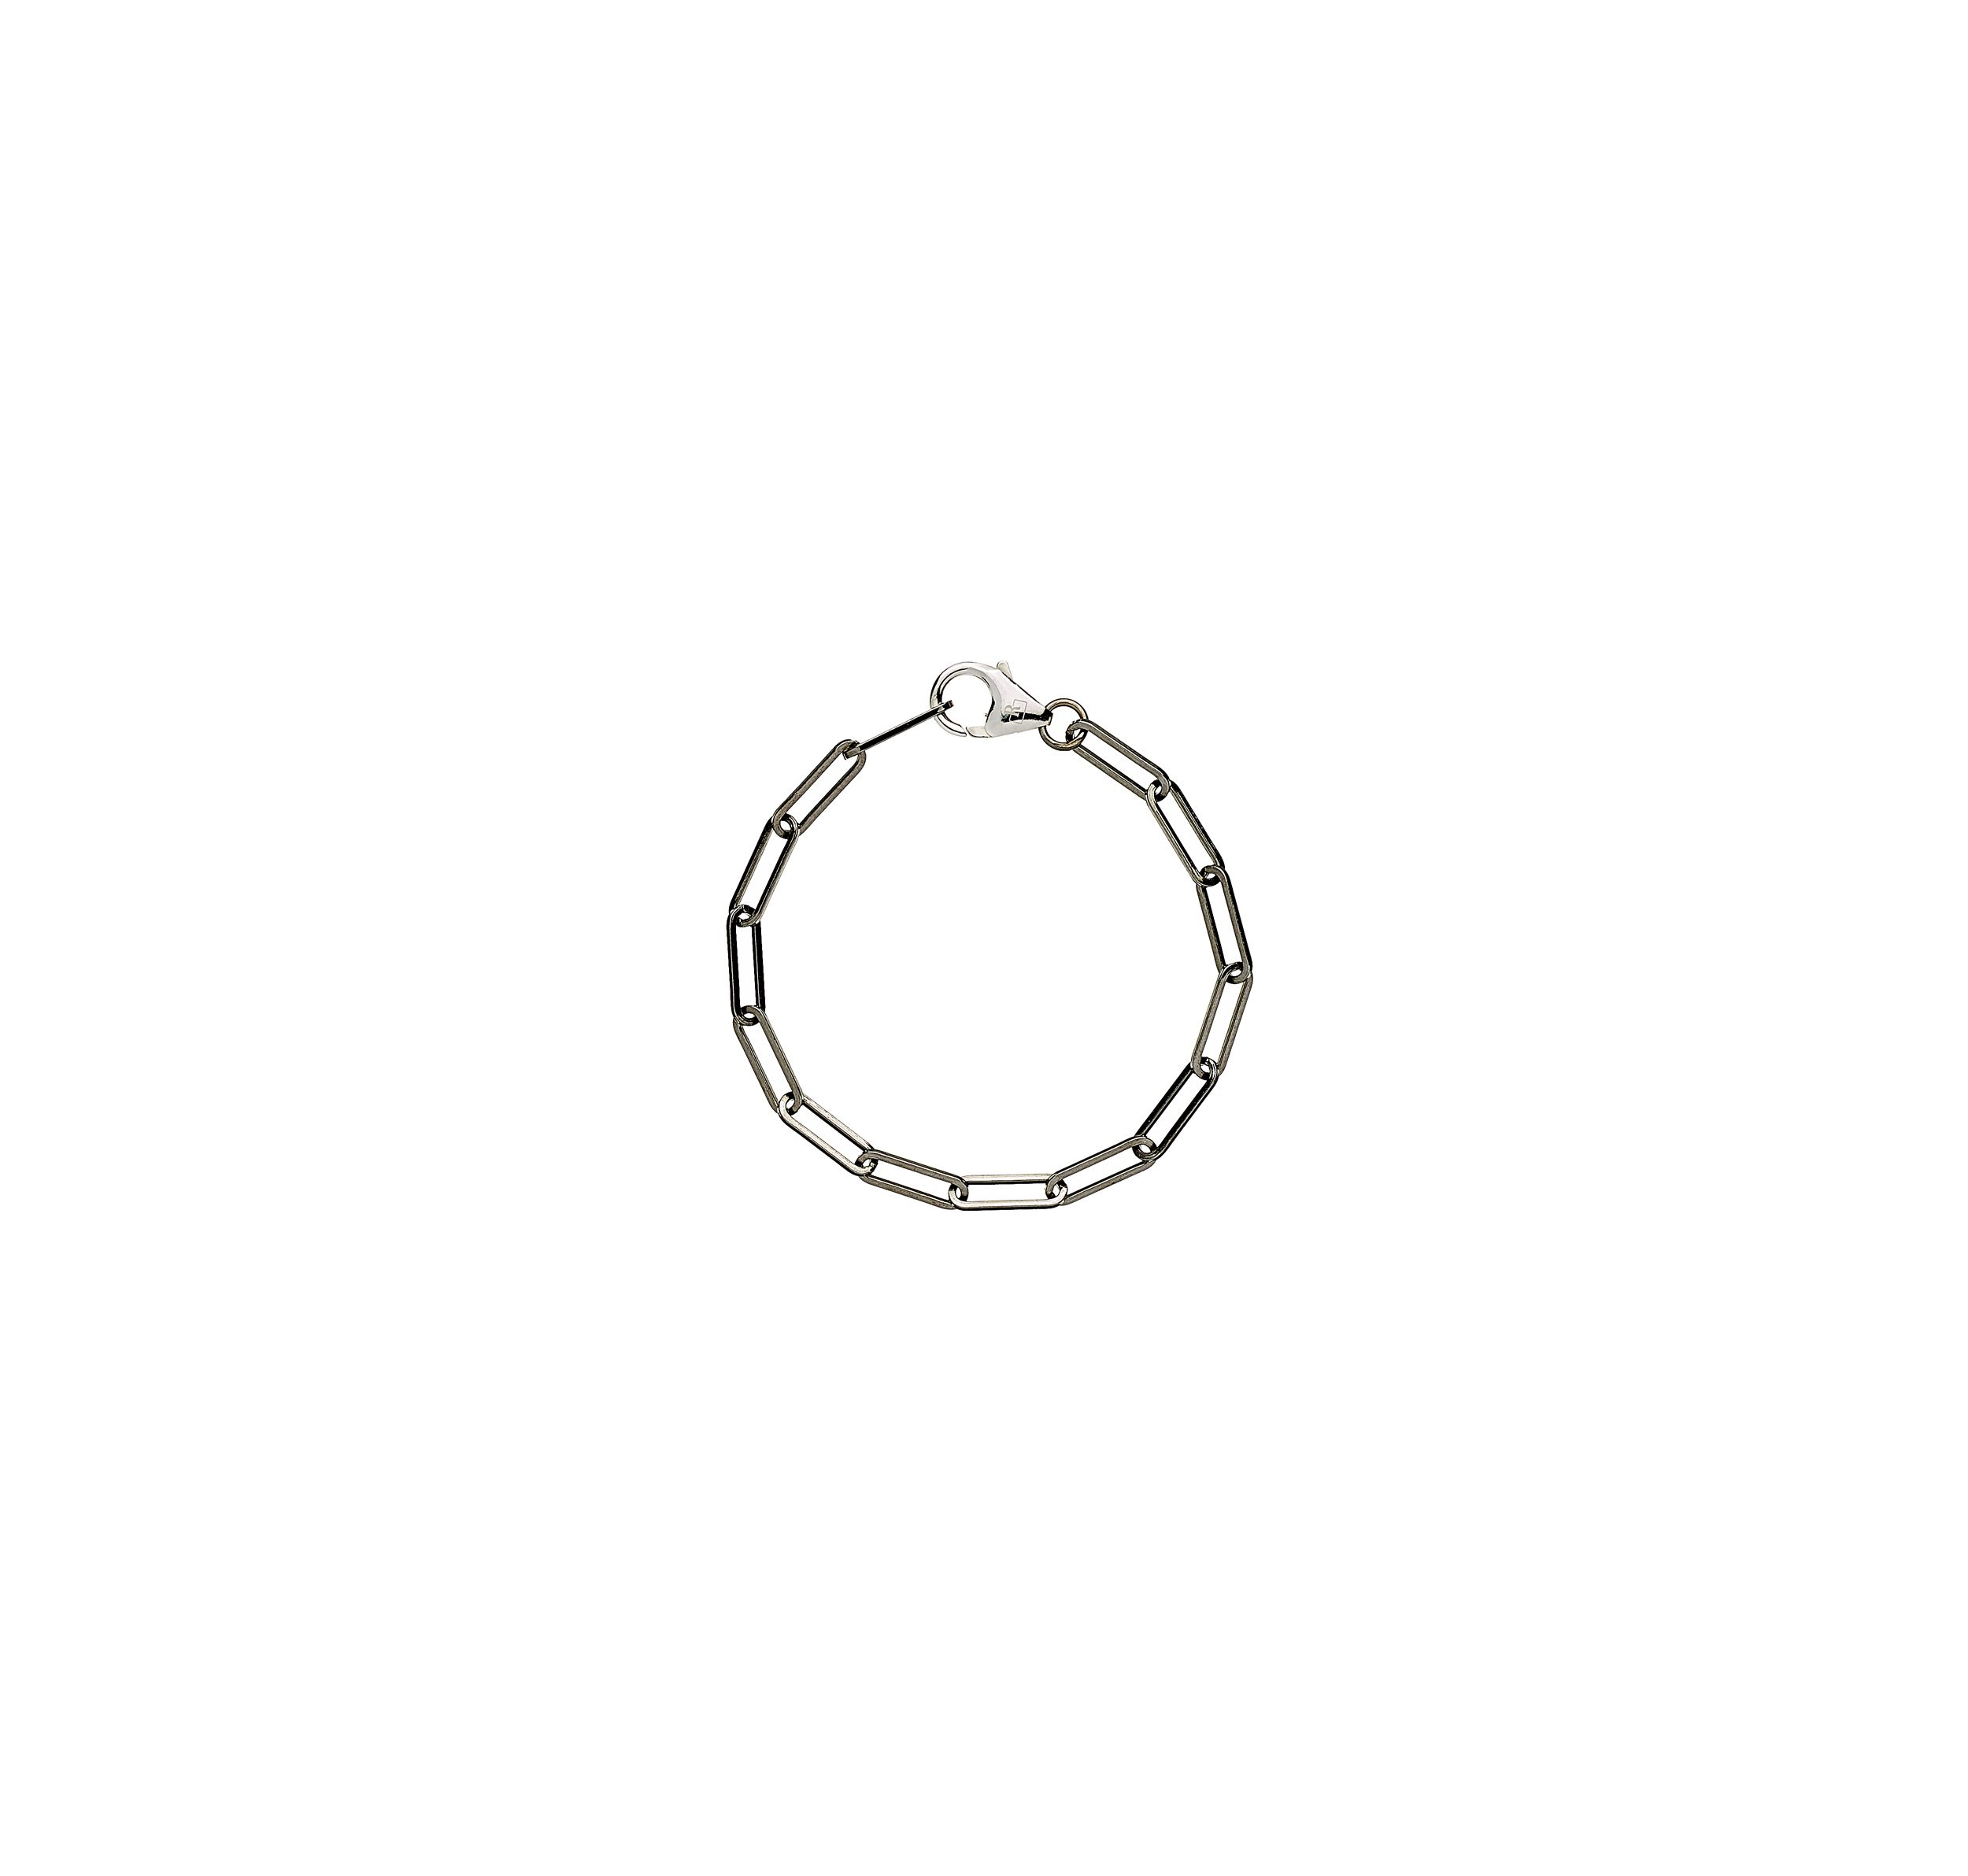 solid 925 Sterling silver and black ruthenium chain luxury bracelet from Regalia Black Logo collection